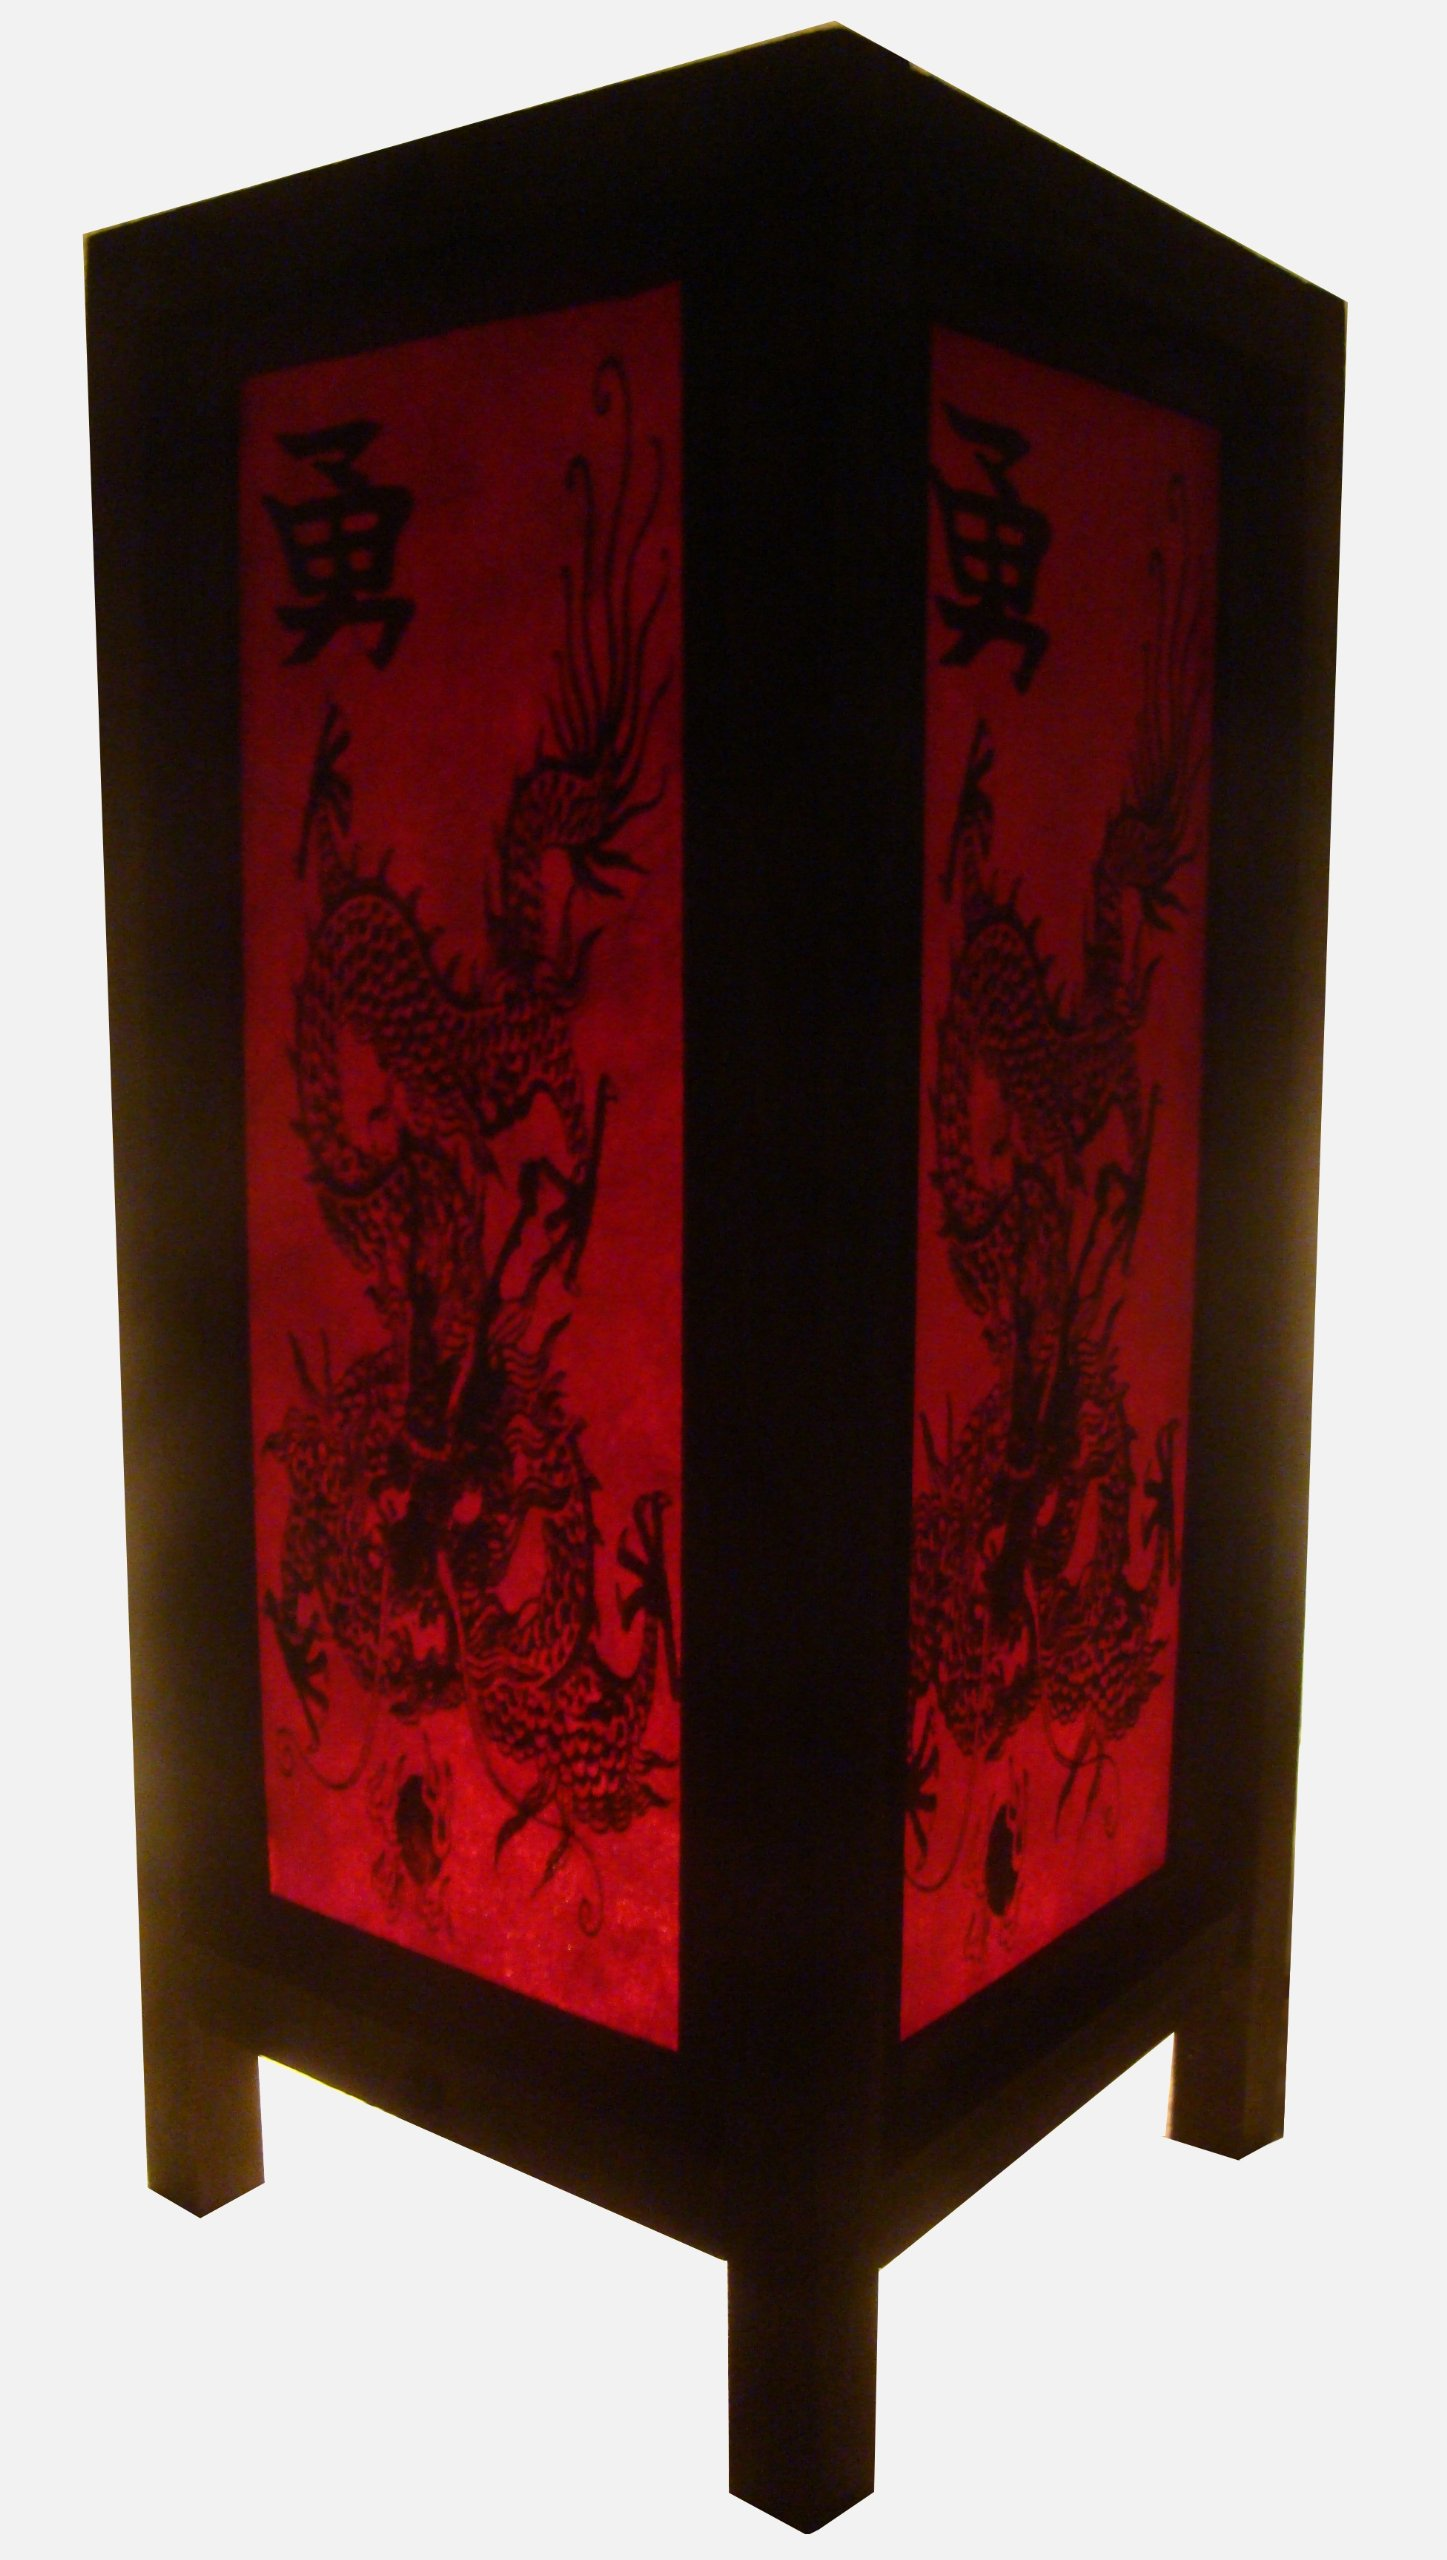 Thai Vintage Handmade Asian Oriental China Black Red Dragon Bedside Table Light or Floor Wood Paper Lamp Shades Home Bedroom Garden Decor Modern Design from Thailand by Red berry Thailand Lanna Lamp